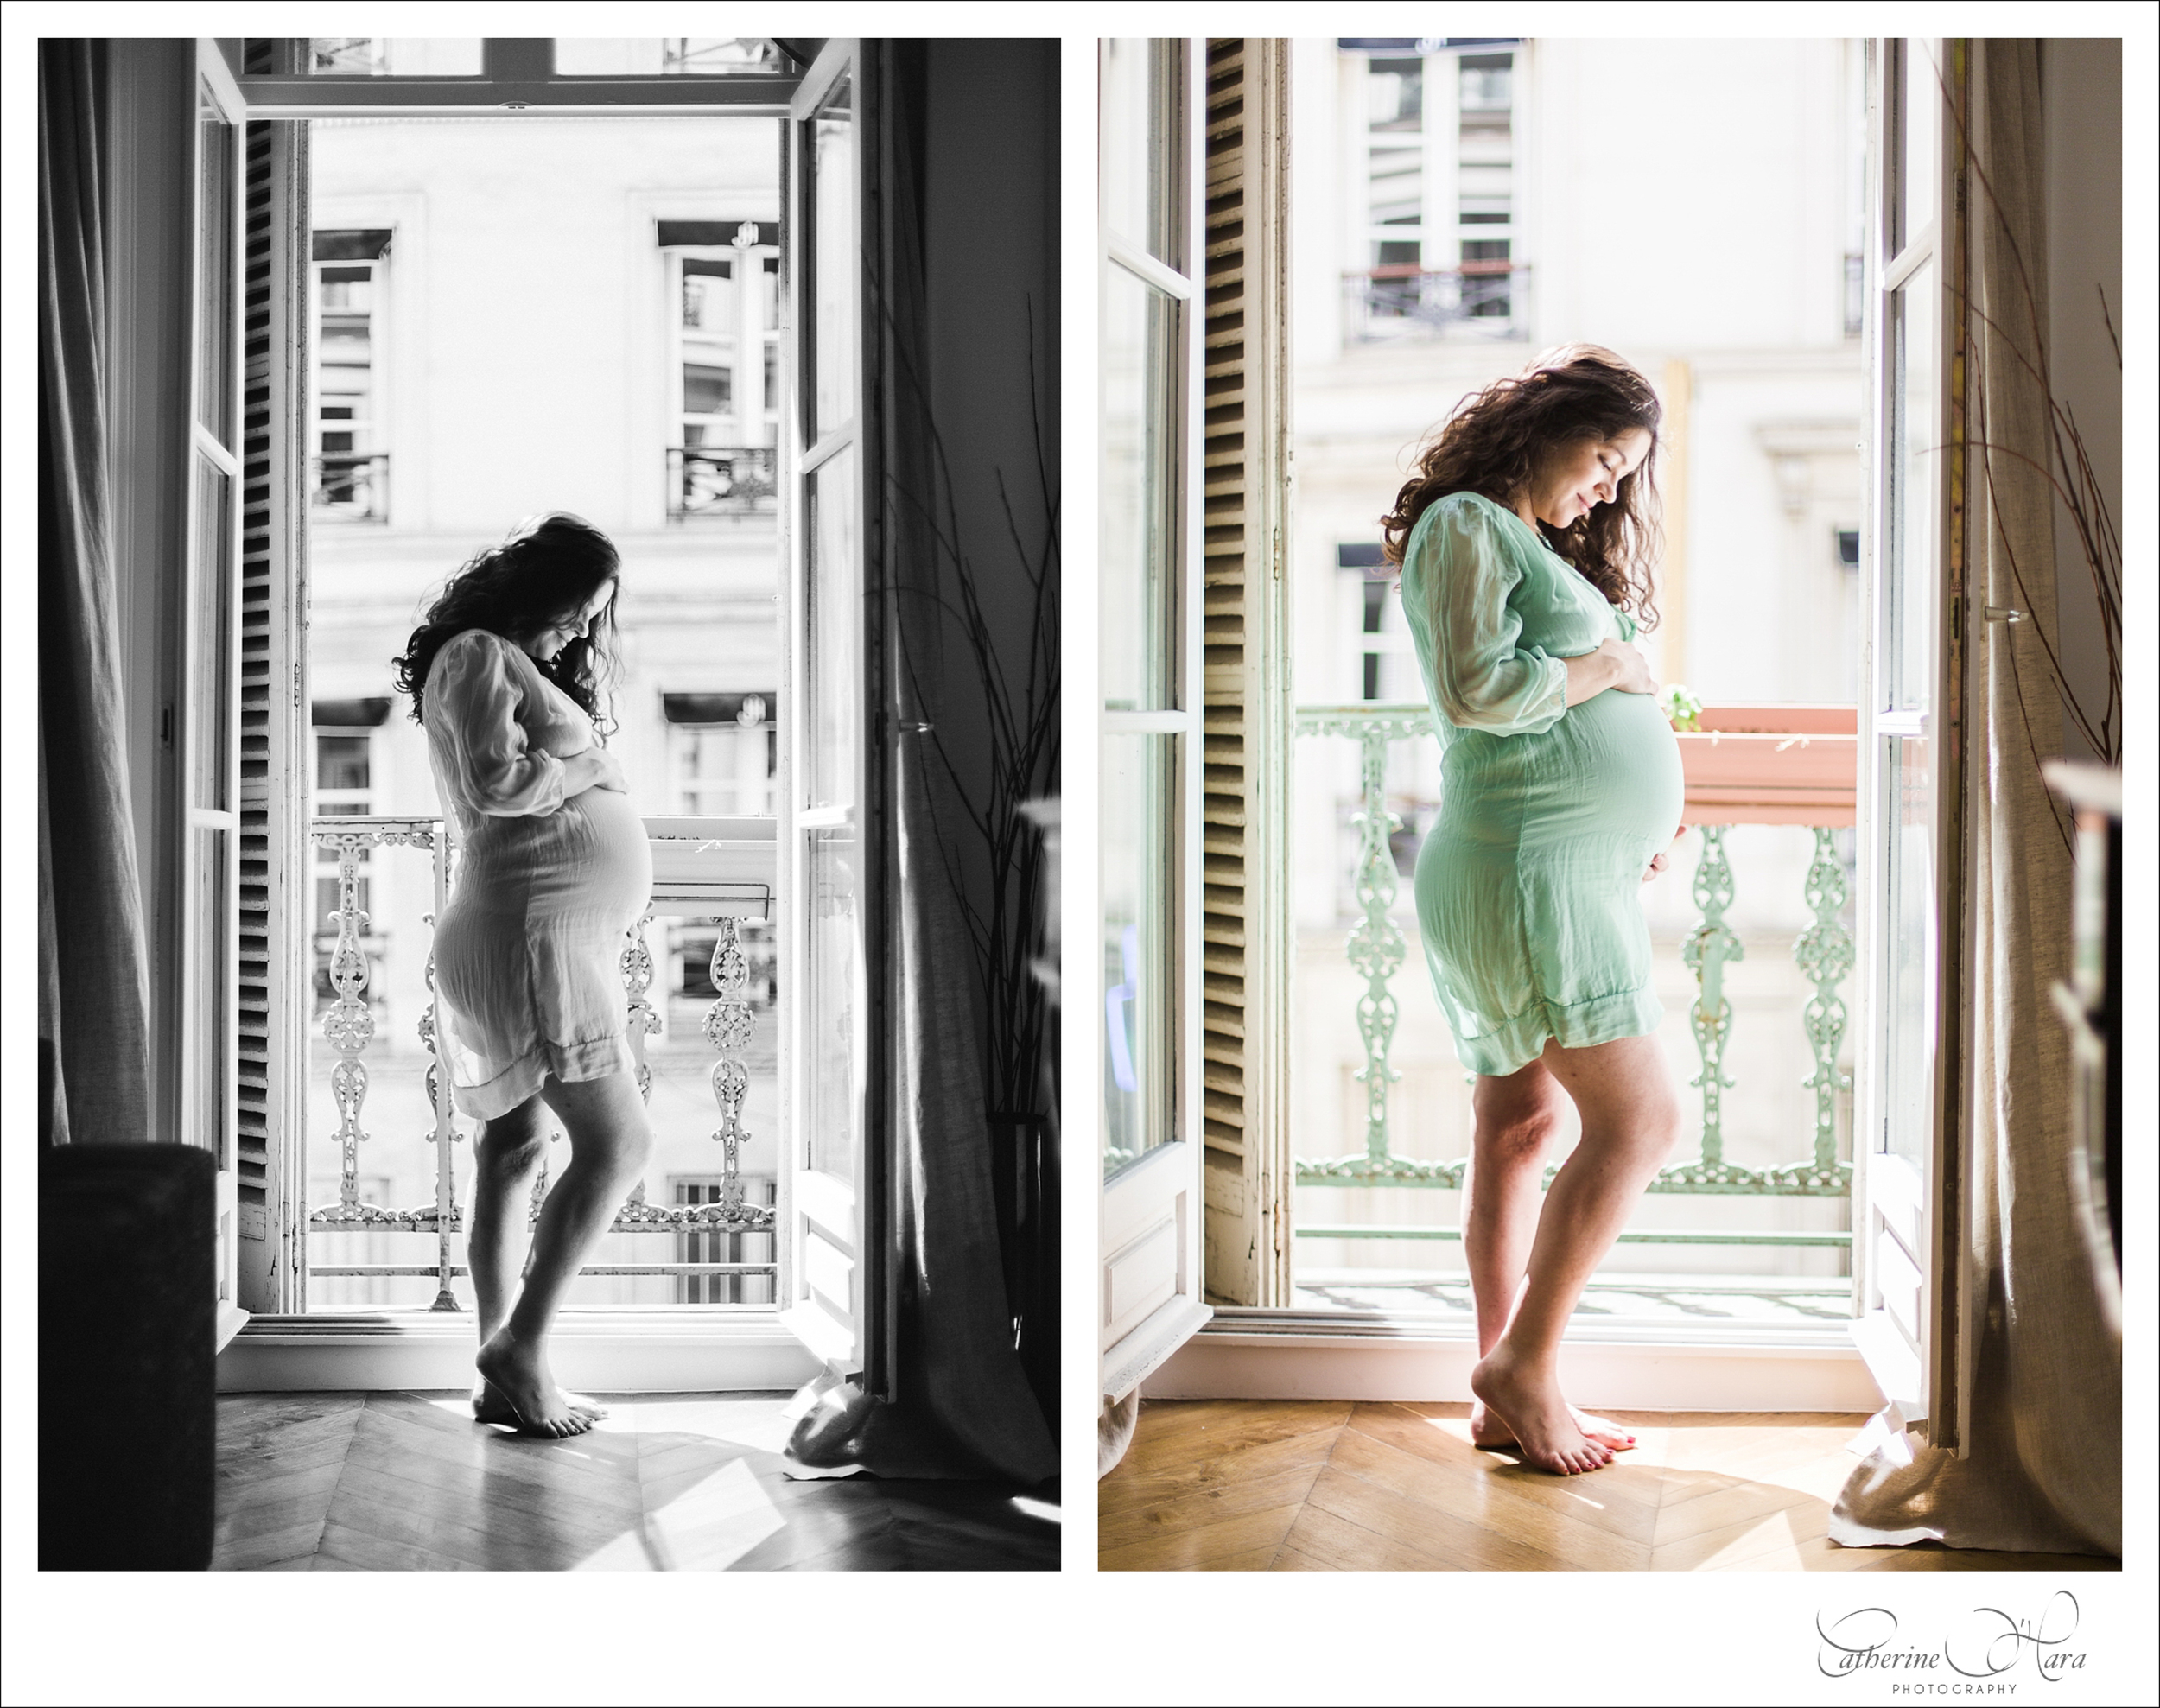 paris-photographer-maternity-shoot-06.jpg